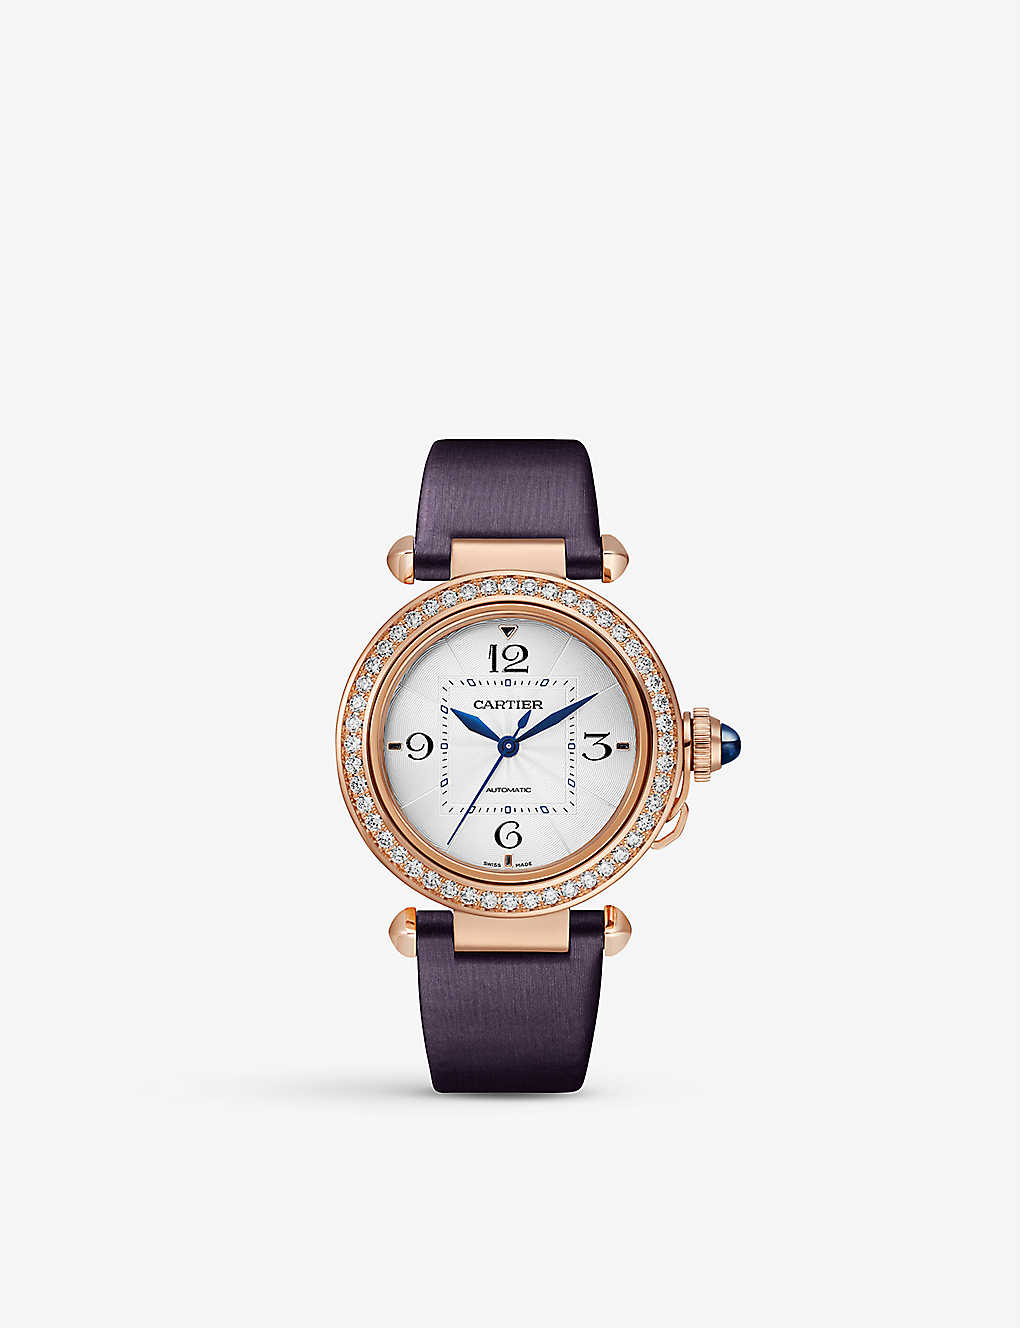 CARTIER: Pasha de Cartier 18ct rose-gold, diamond, sapphire and leather interchangeable strap automatic watch